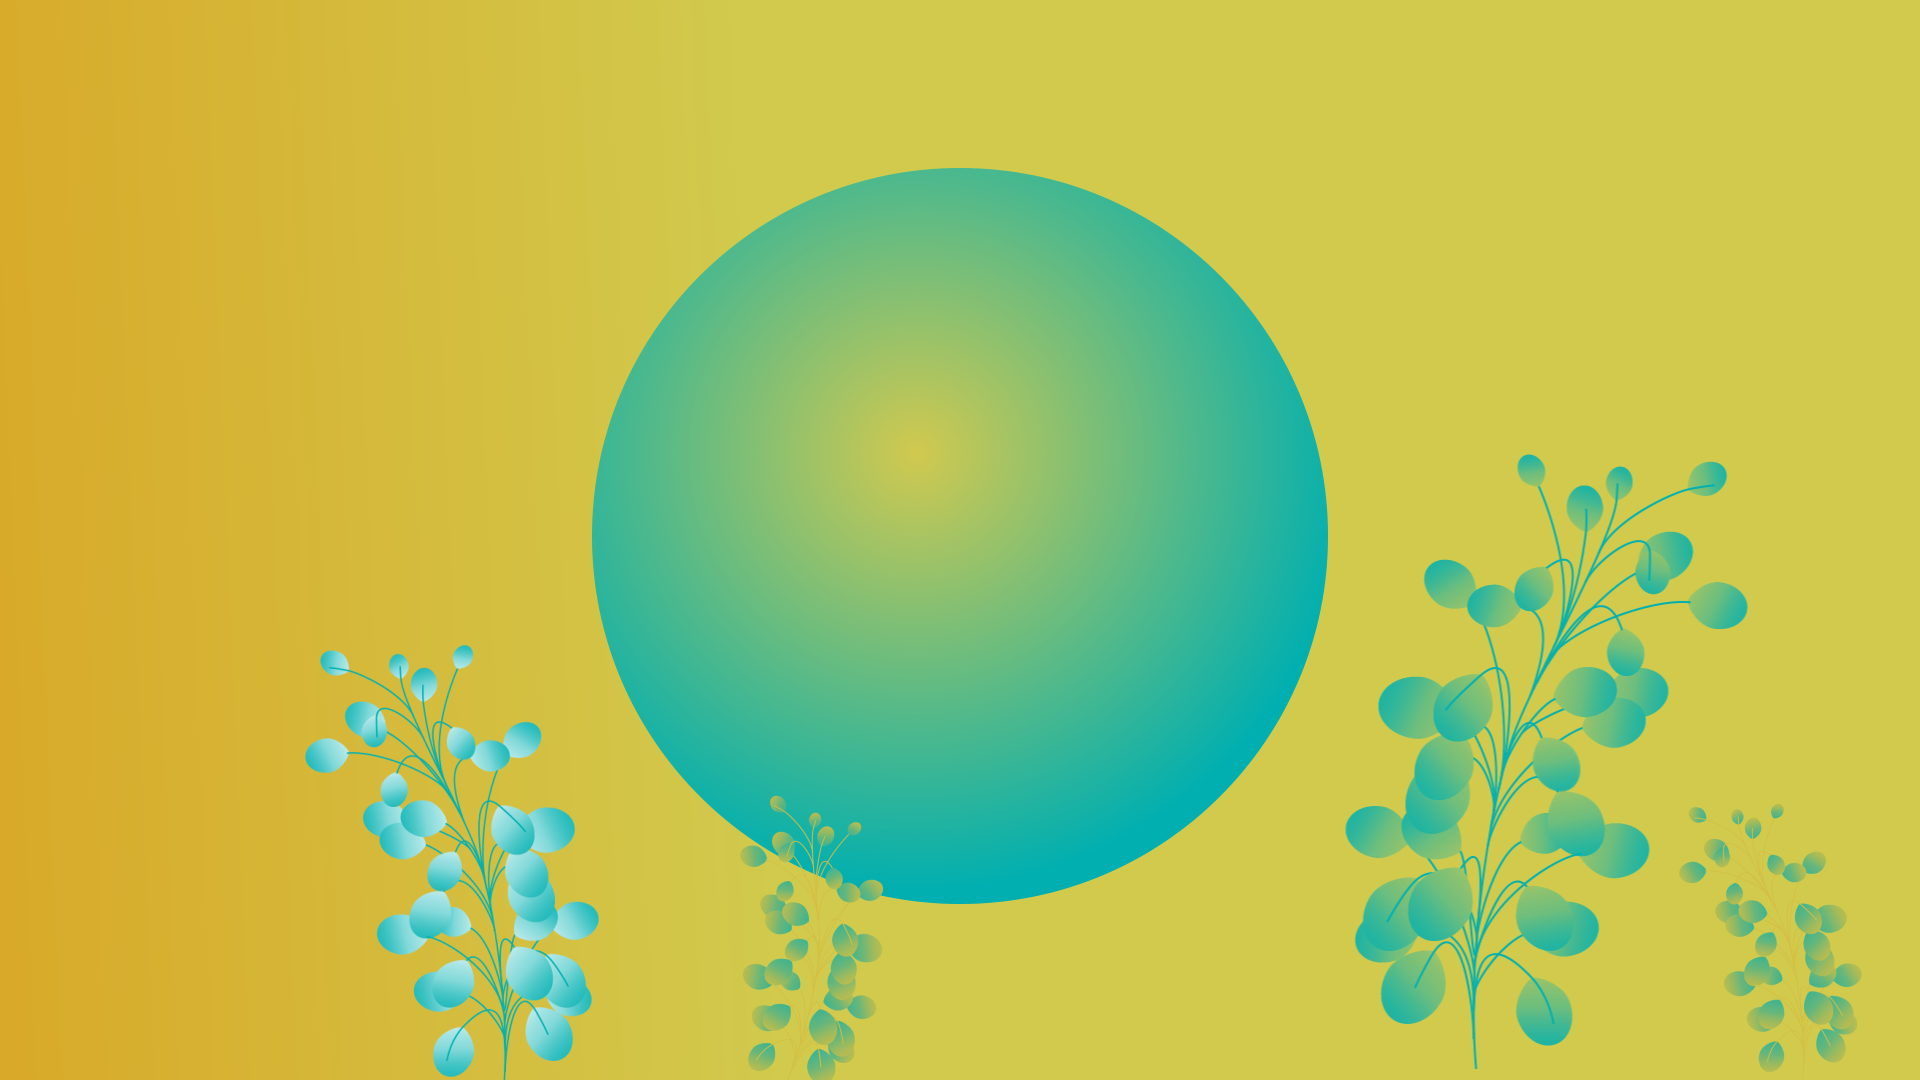 Blogging, inner circle of creative marketing, green circle on yellow background with growing green plants.